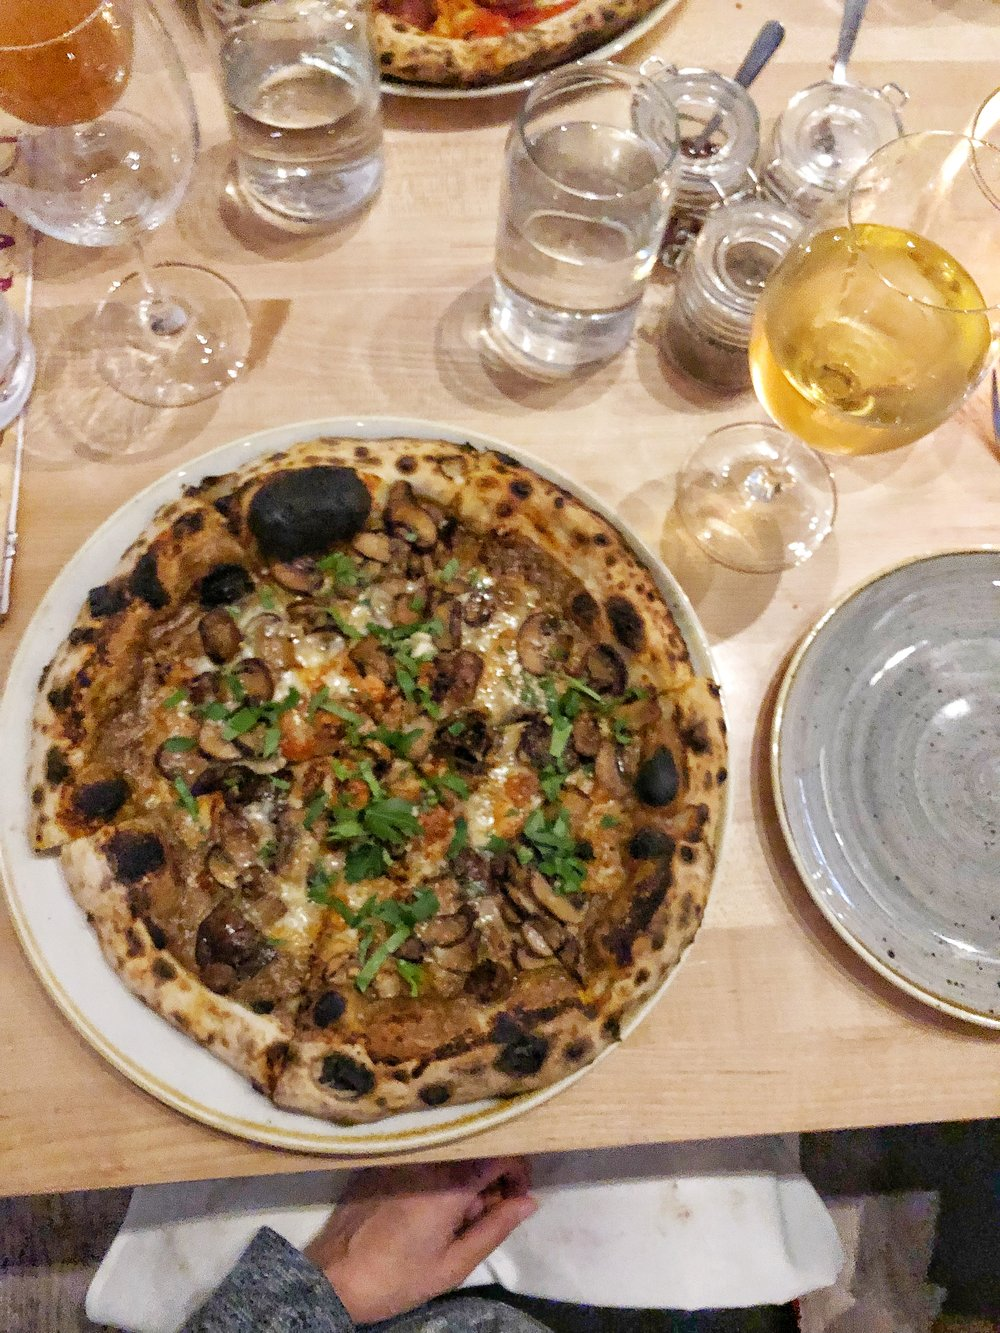 Mushroom pizza is the best pizza and it's even better when there are mushrooms AND mushroom sauce